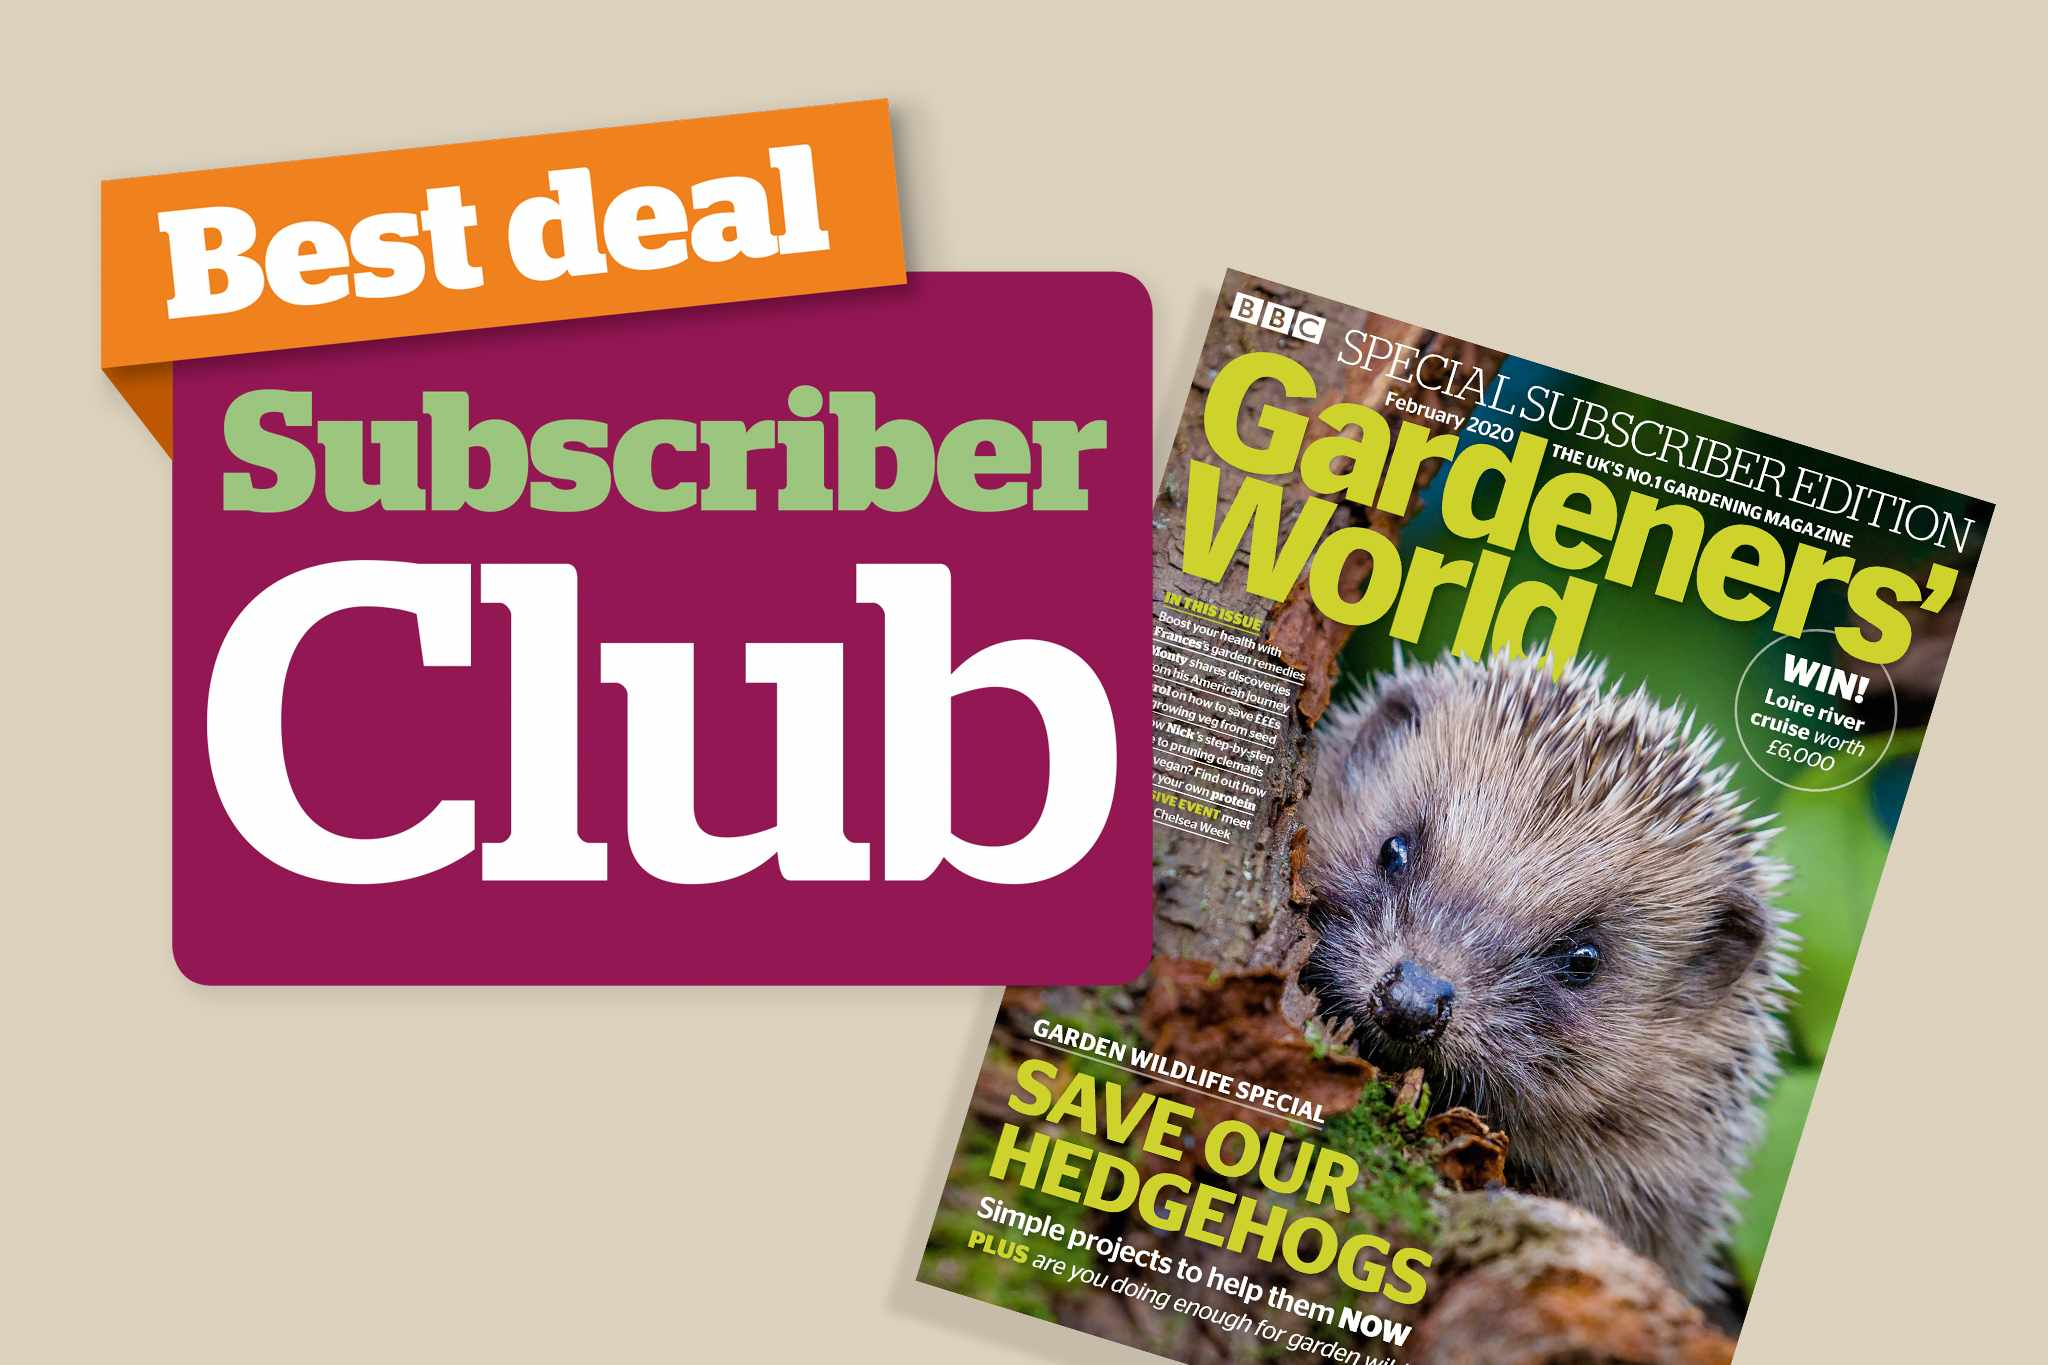 Subscribers save 10% with our selected partners. New February issue cover.